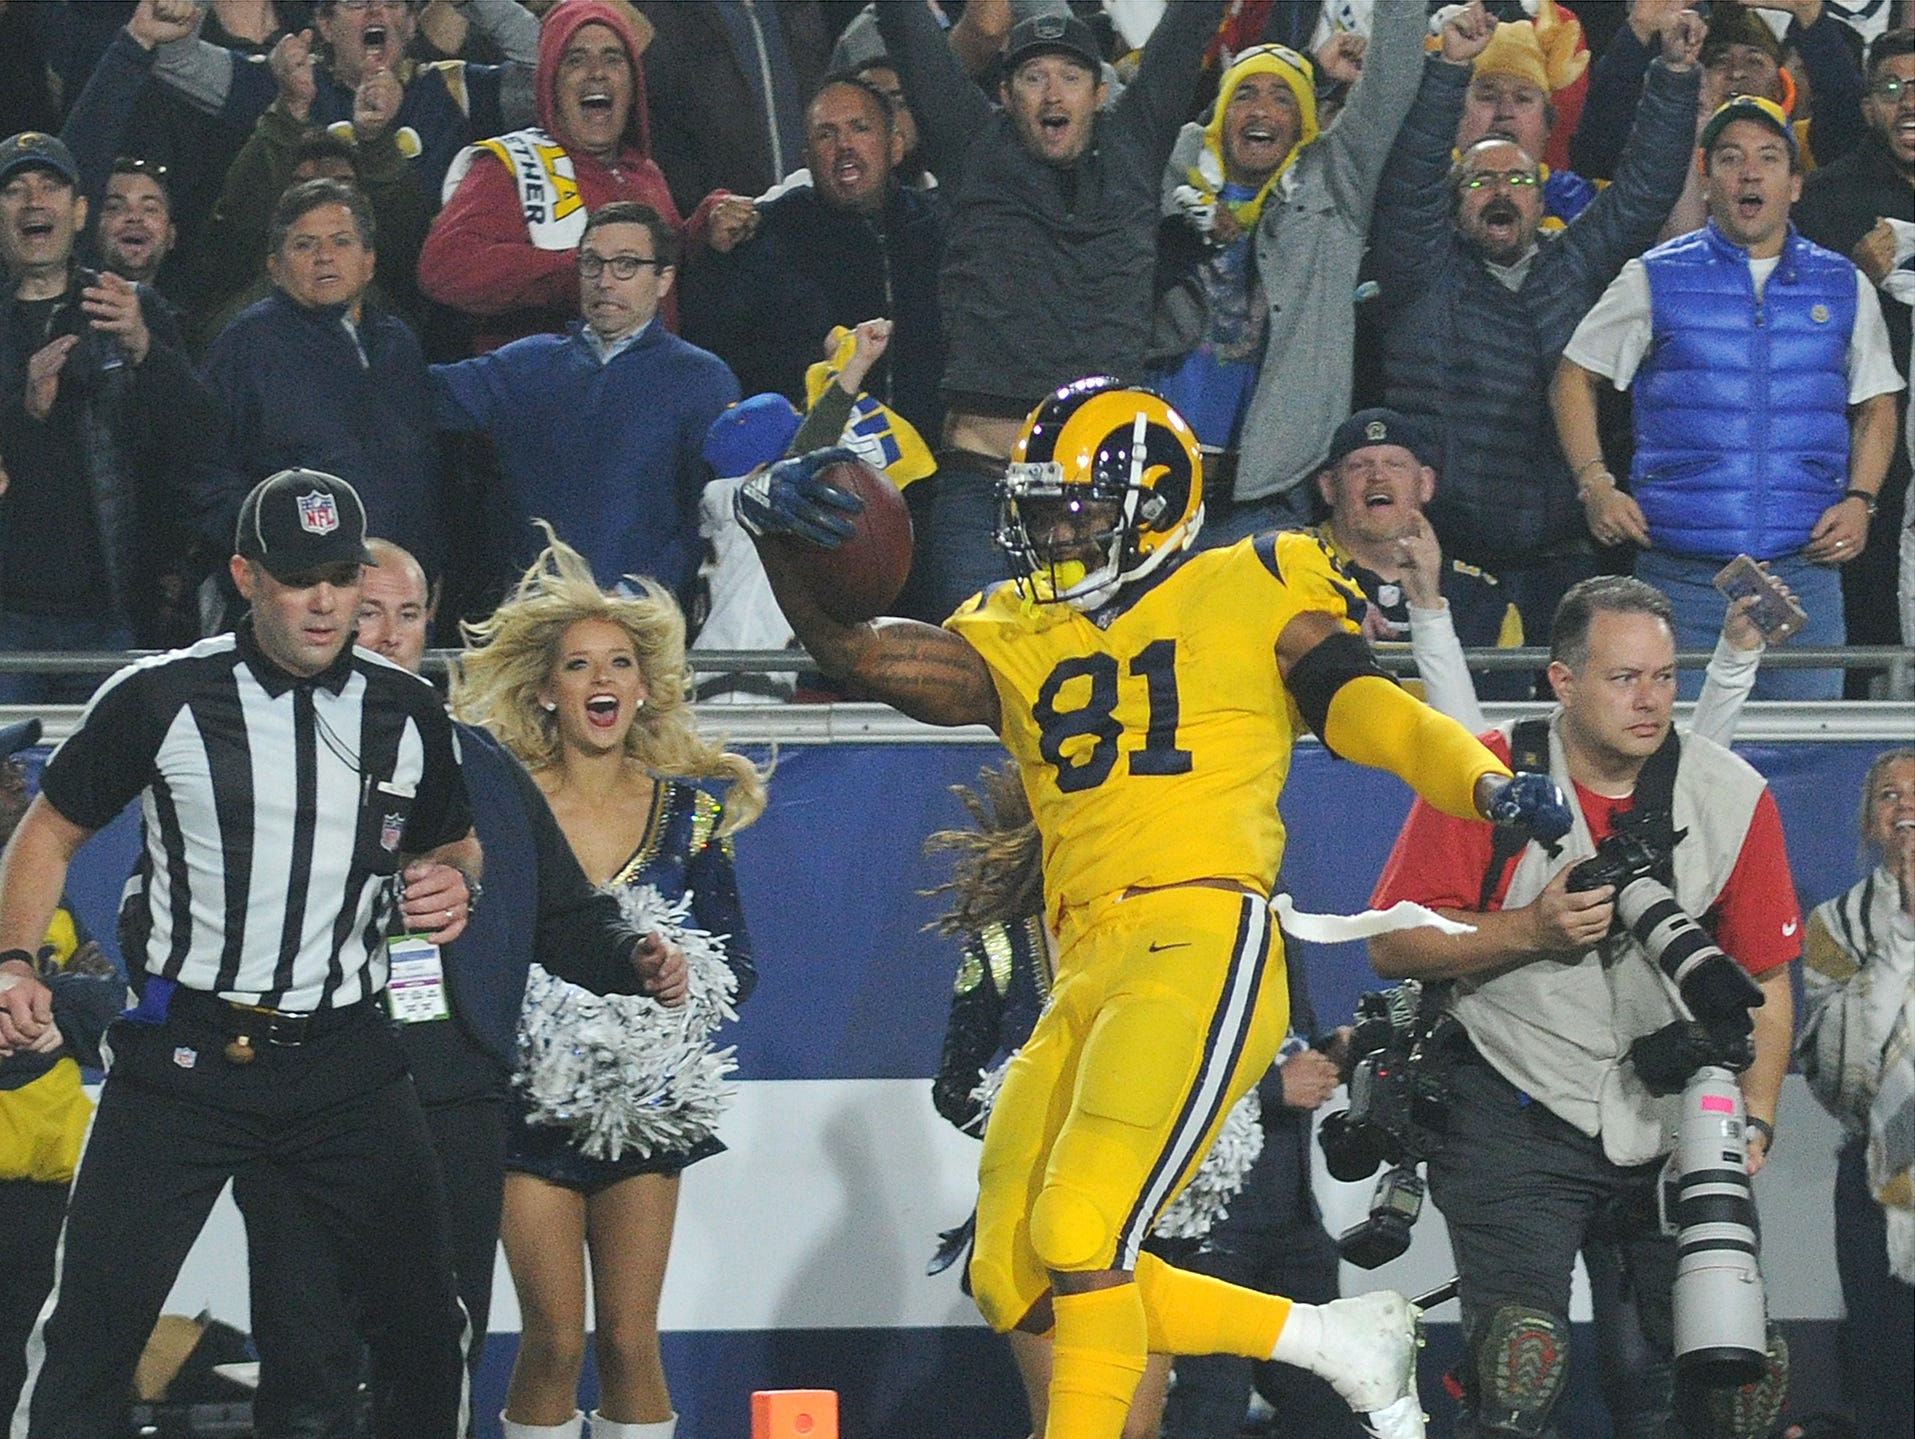 Gerald Everett scores the Rams' winning touchdown on a pass from Jared Goff with under two minutes left in the game for a historic 54-51 win over the Chiefs on Monday night.